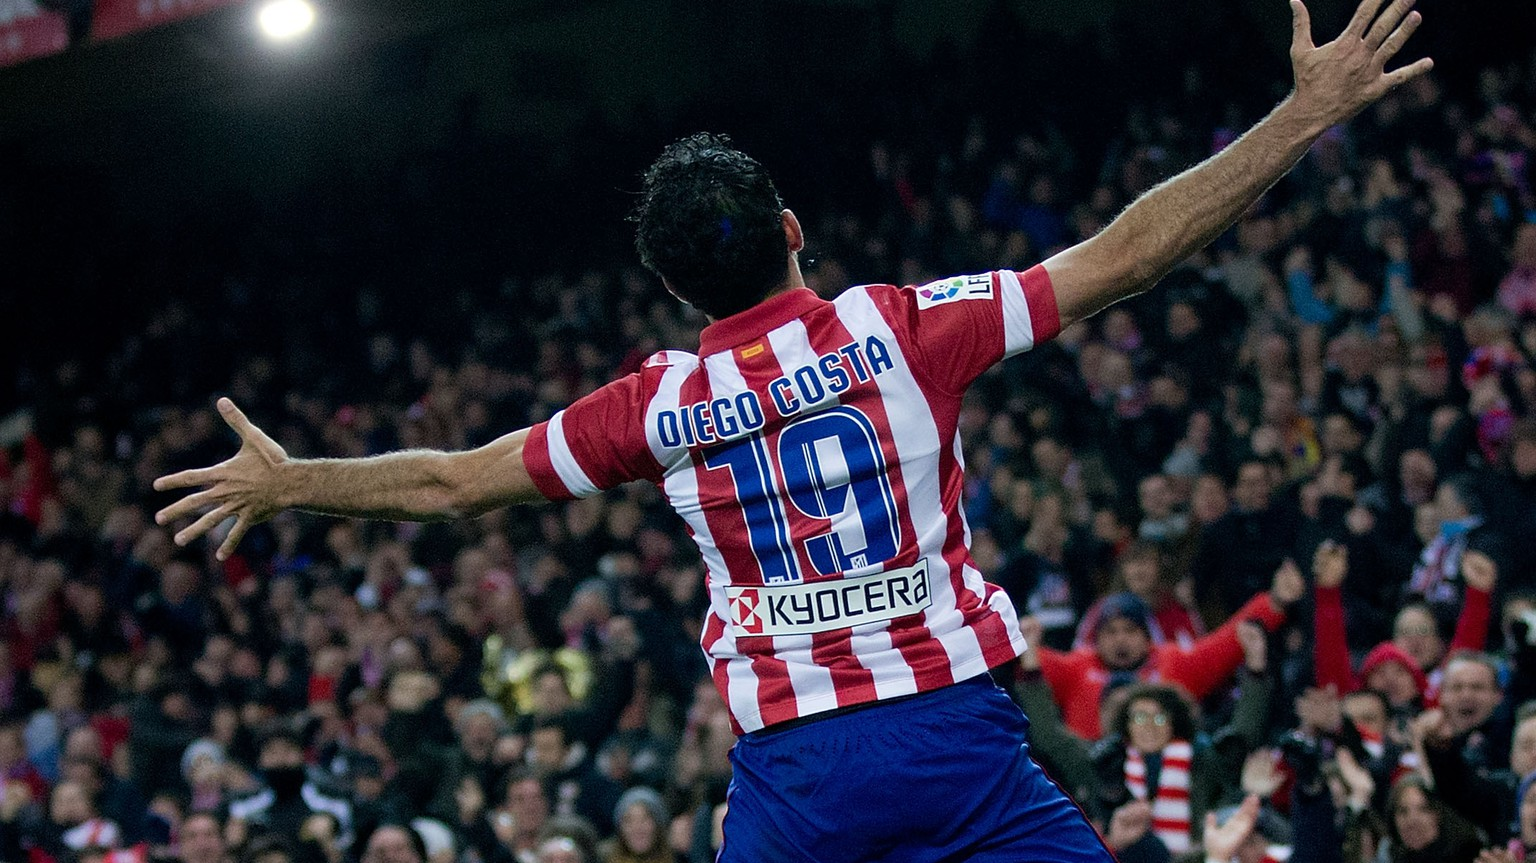 MADRID, SPAIN - FEBRUARY 02:  Diego Costa of Atletico de Madrid celebrates scoring their second goal during the La Liga match between Club Atletico de Madrid and Real Sociedad de Futbol at Vicente Calderon Stadium on February 2, 2014 in Madrid, Spain.  (Photo by Gonzalo Arroyo Moreno/Getty Images)